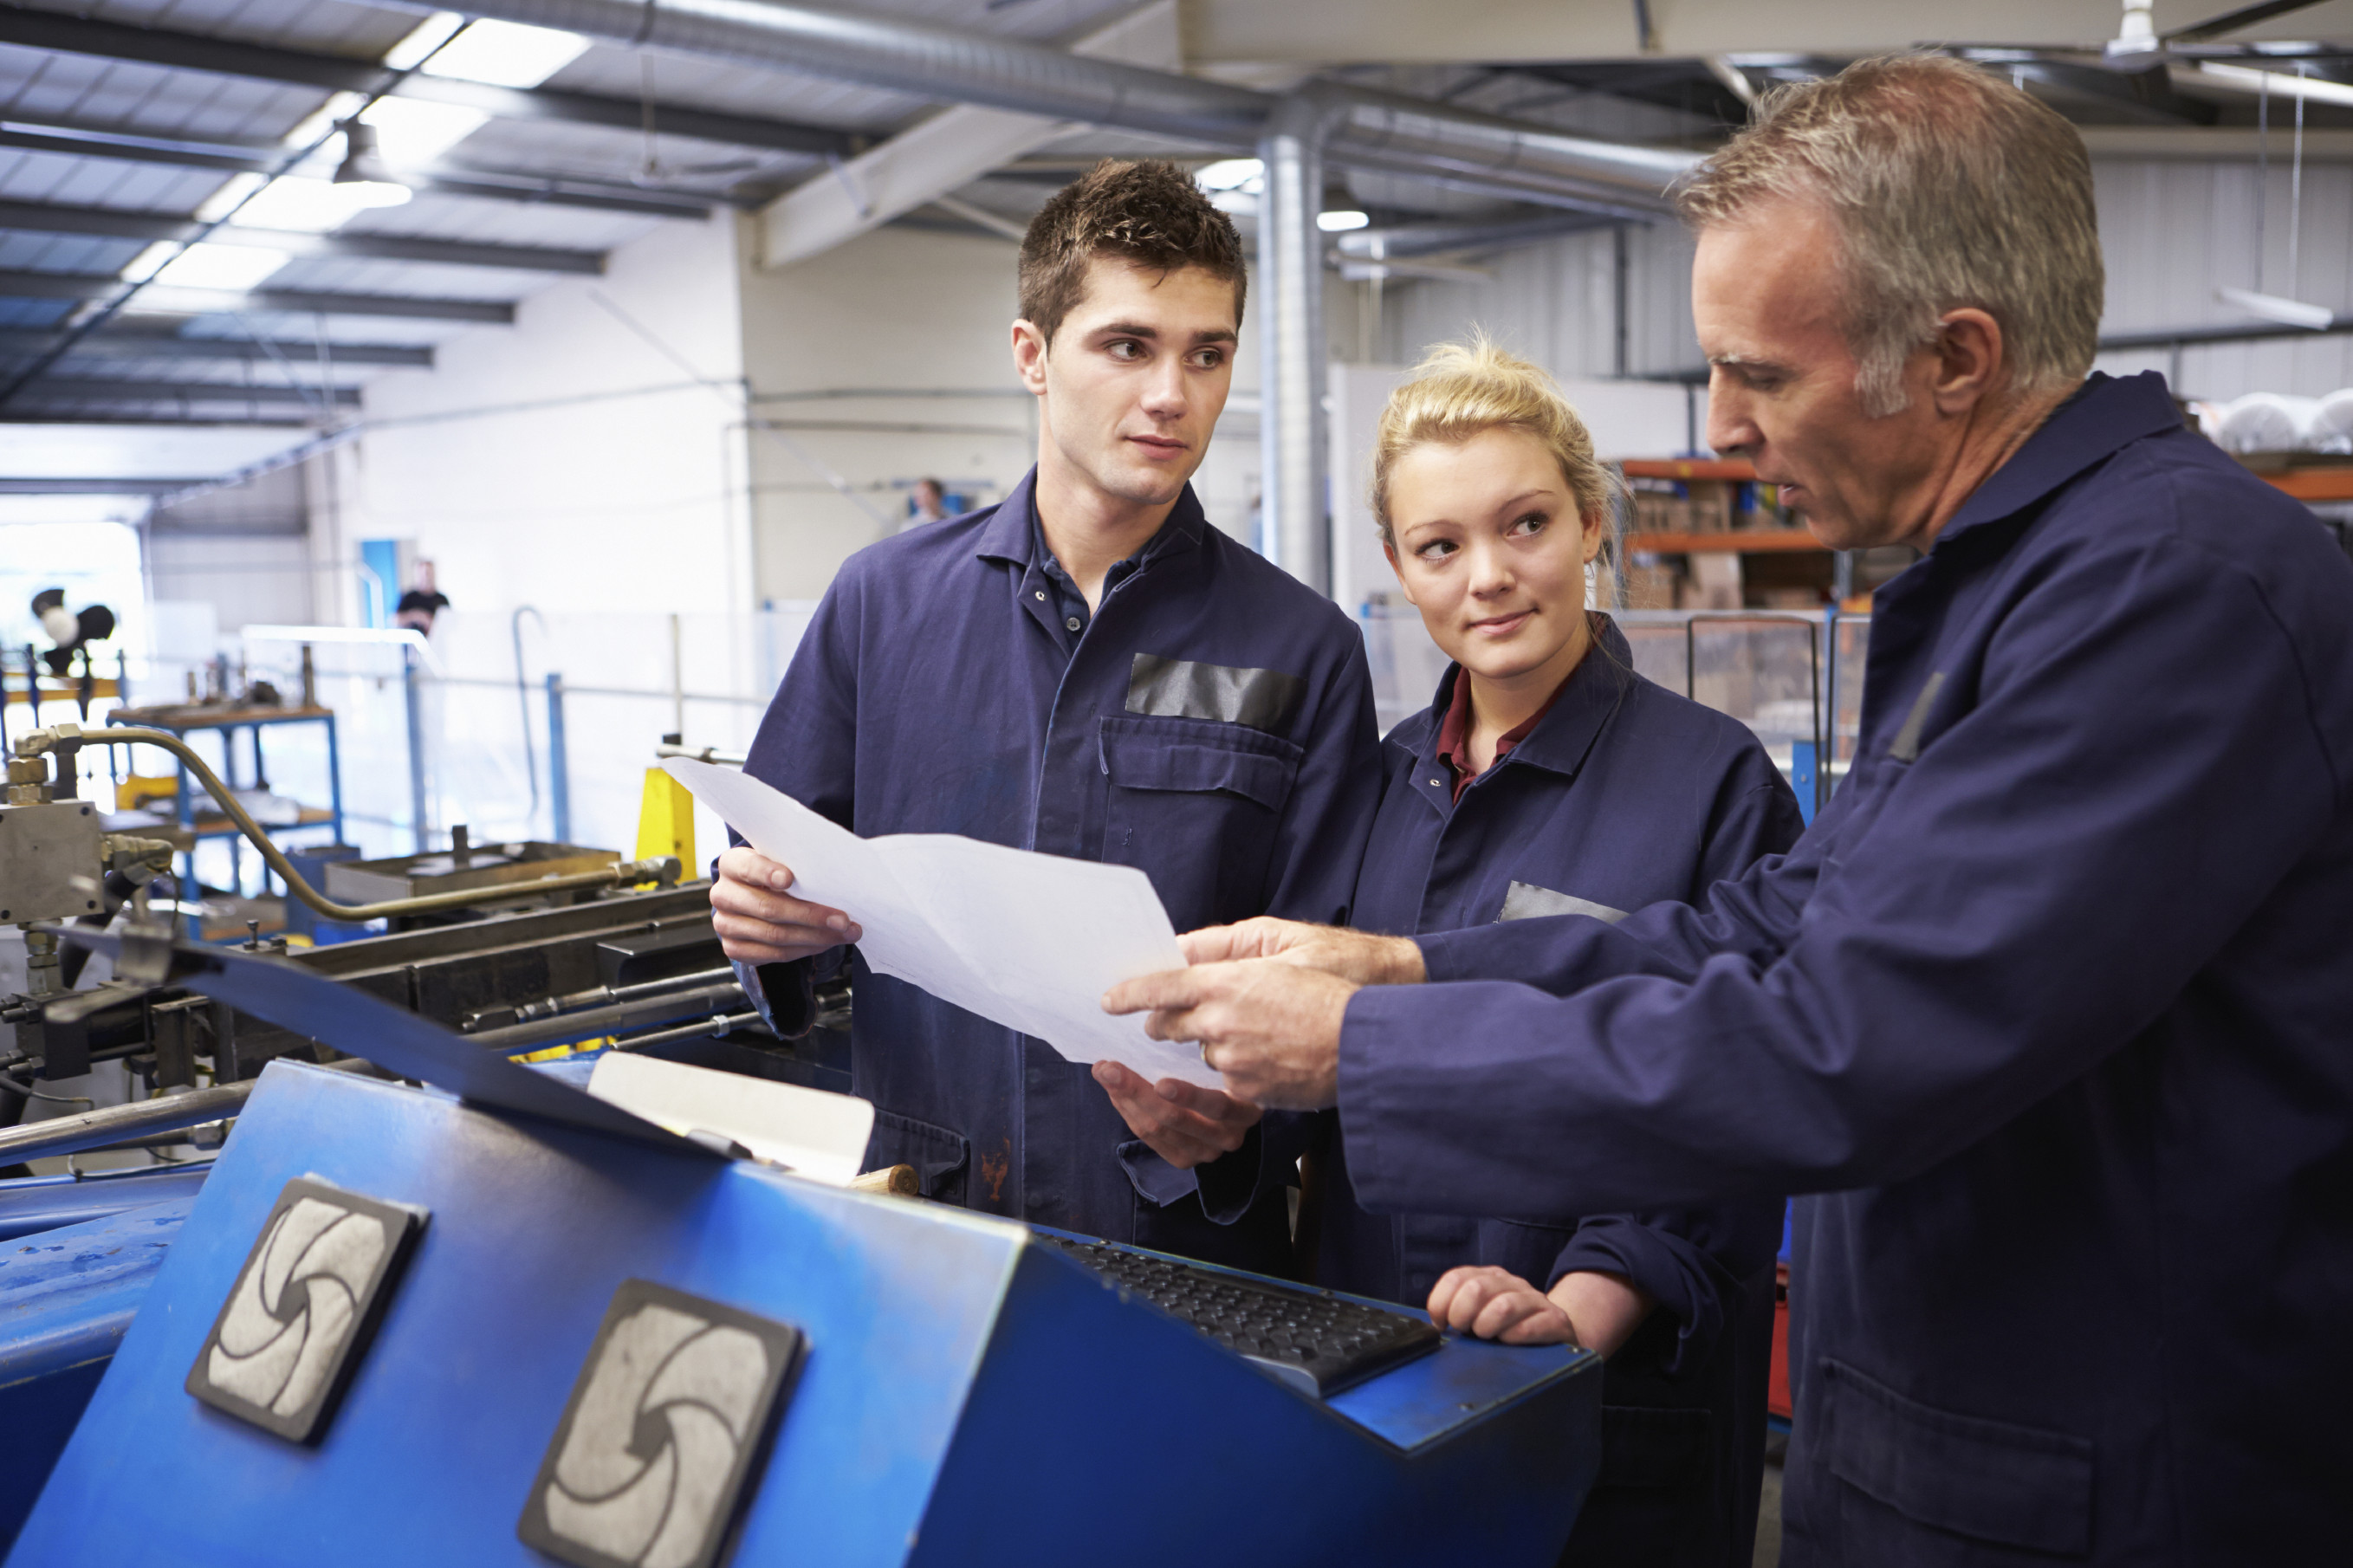 Engineer-Teaching-Apprentices-To-Use-Tube-Bending-Machine